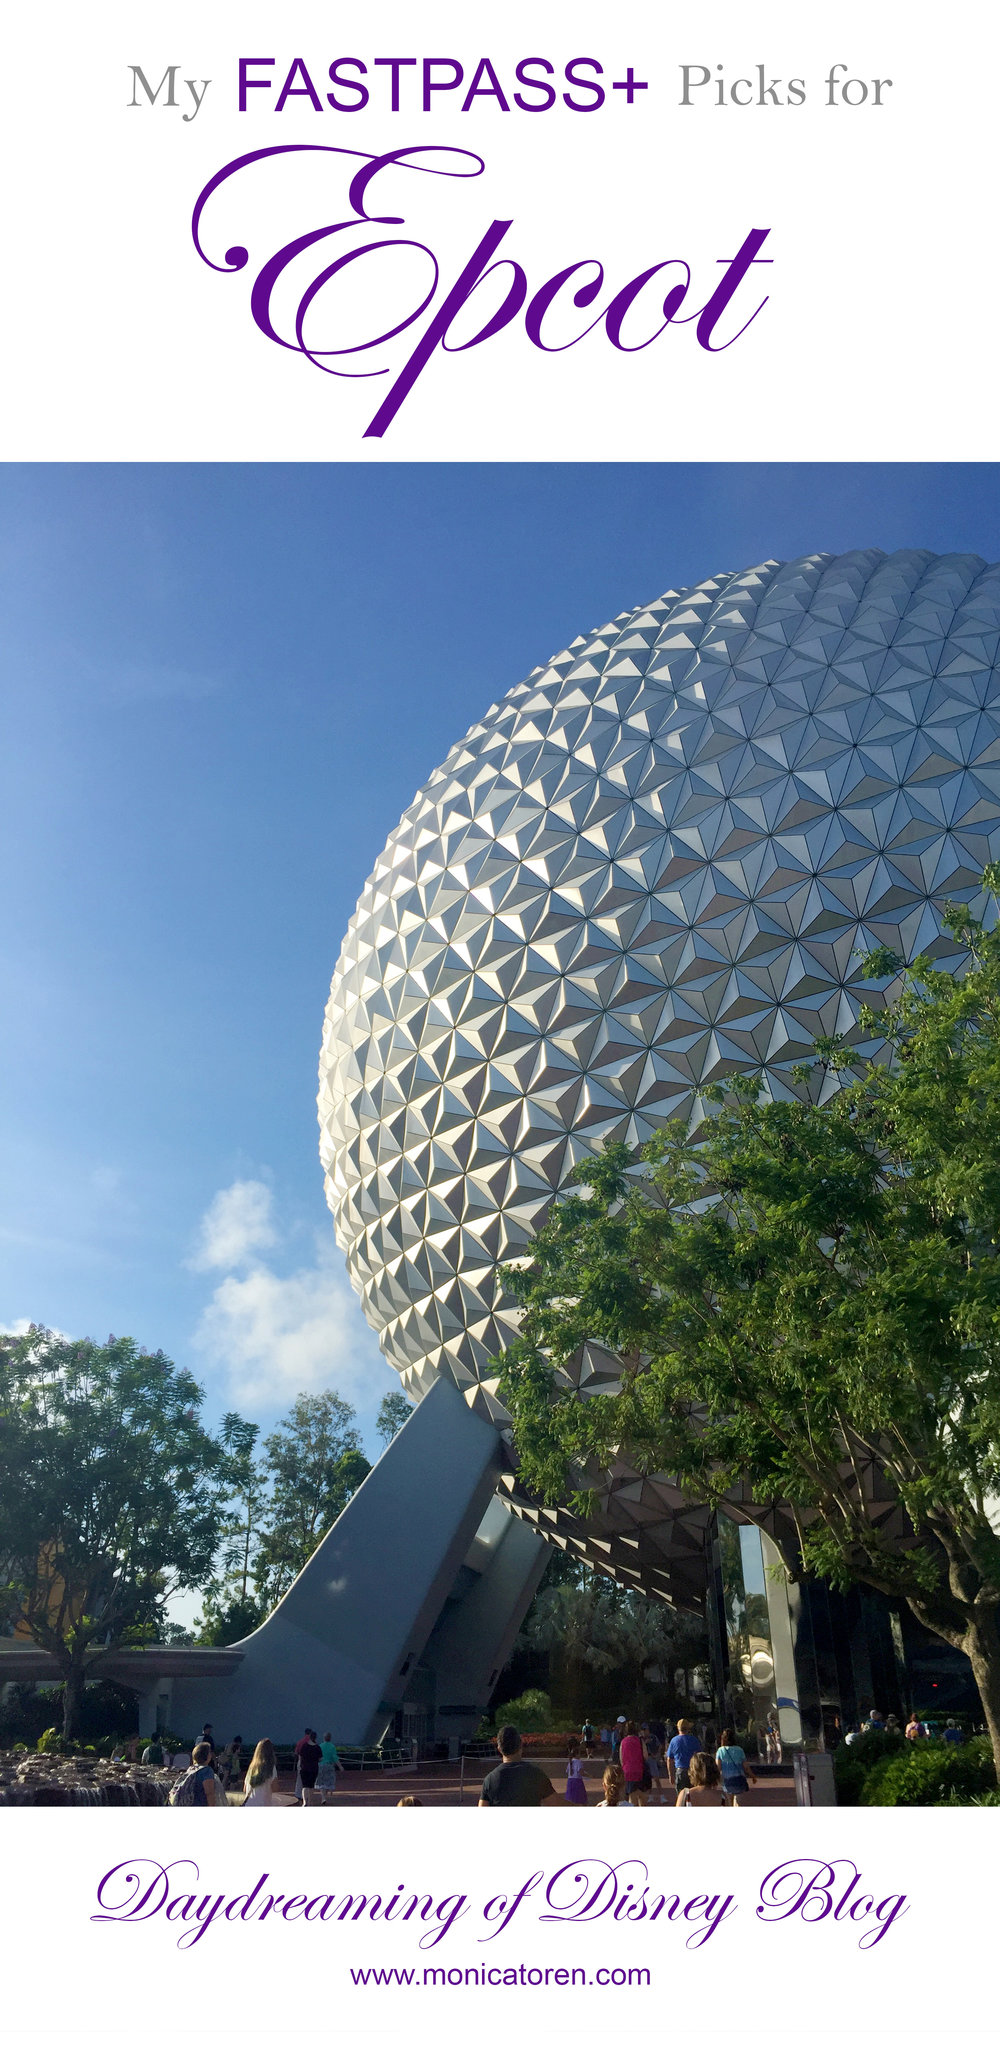 Daydreaming of Disney Blog - My Fastpass Picks for Epcot - http://www.monicatoren.com #disney #fastpass #disneyworld #disneyworldplanning